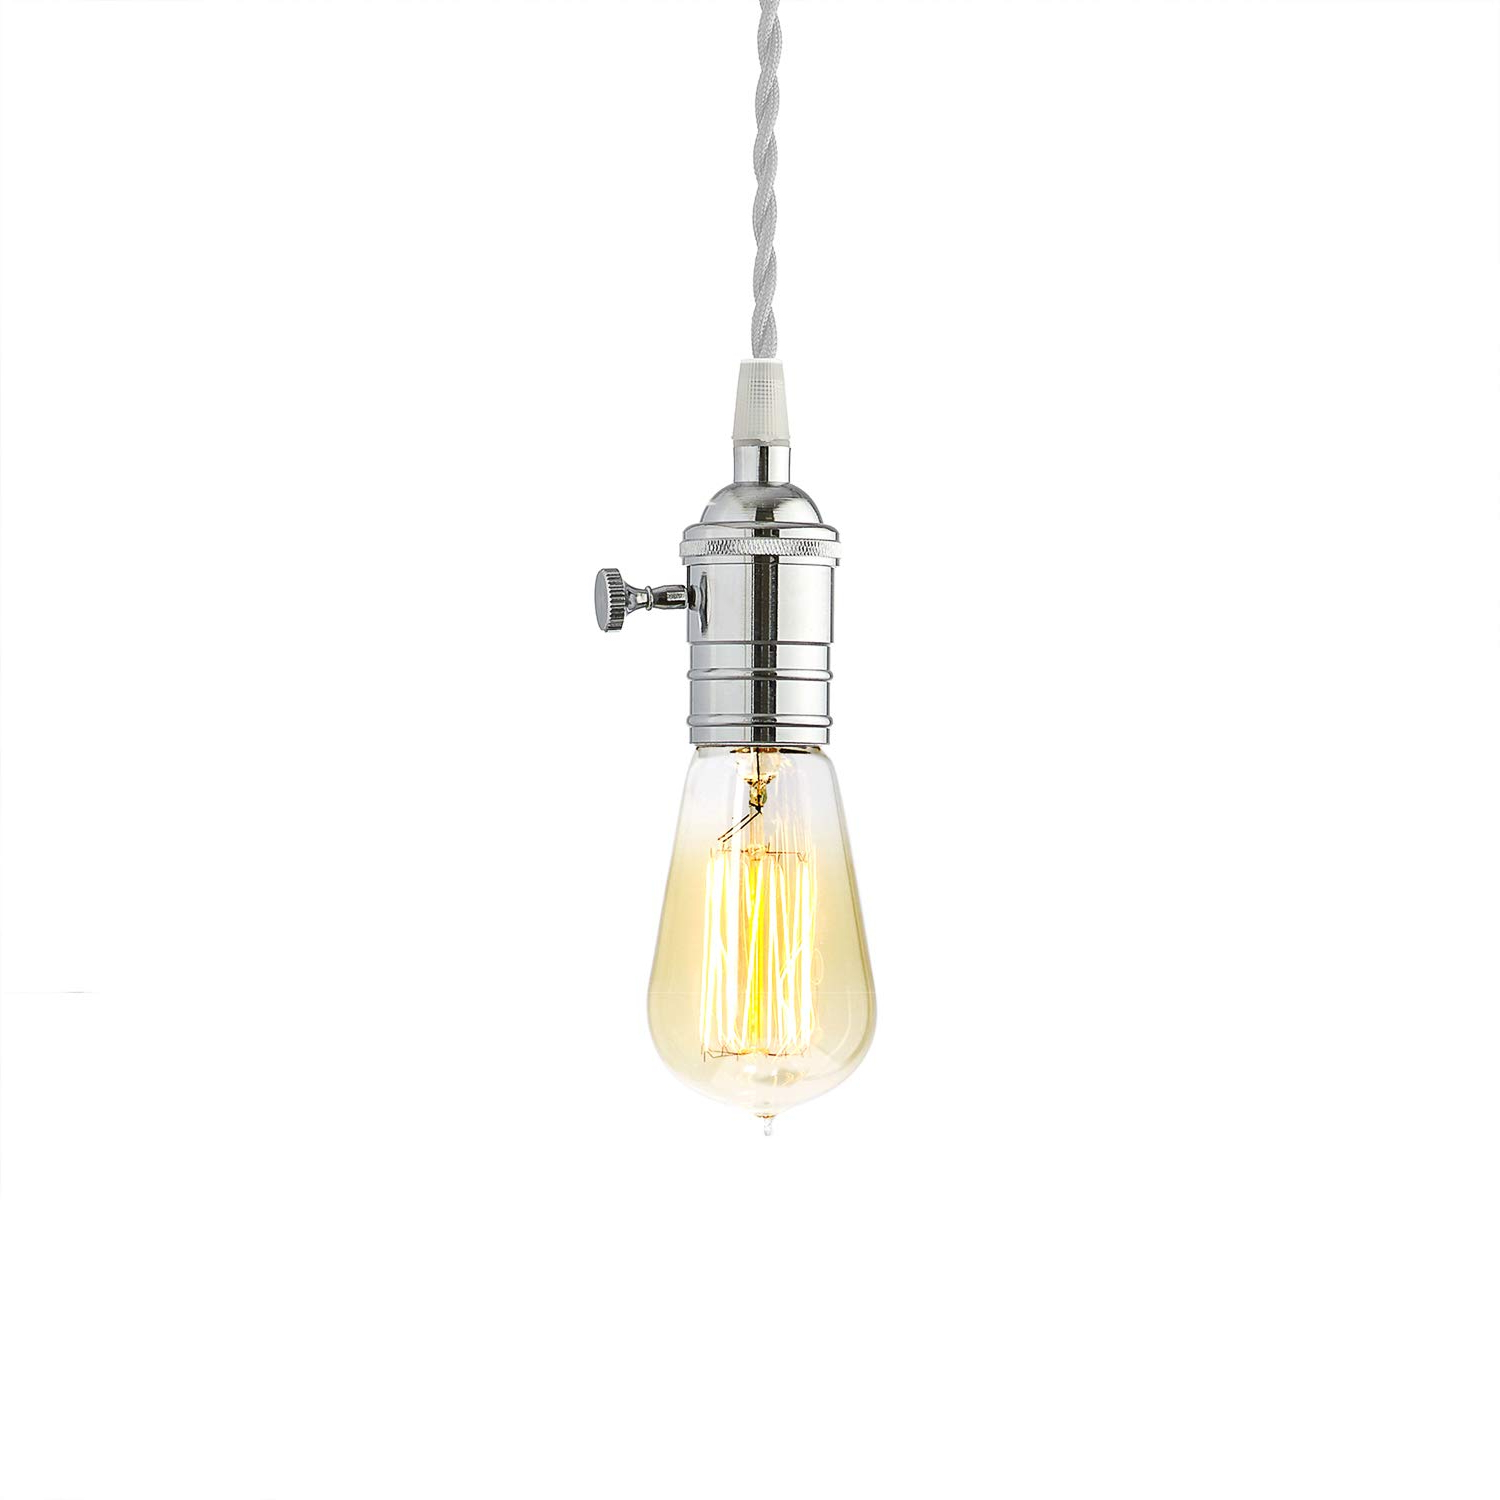 1 White Pendant Cord Light With 1 Vintage Edison Style Bulb, Single Chrome  Socket, Twisted Cord with Most Current Demi 1-Light Globe Pendants